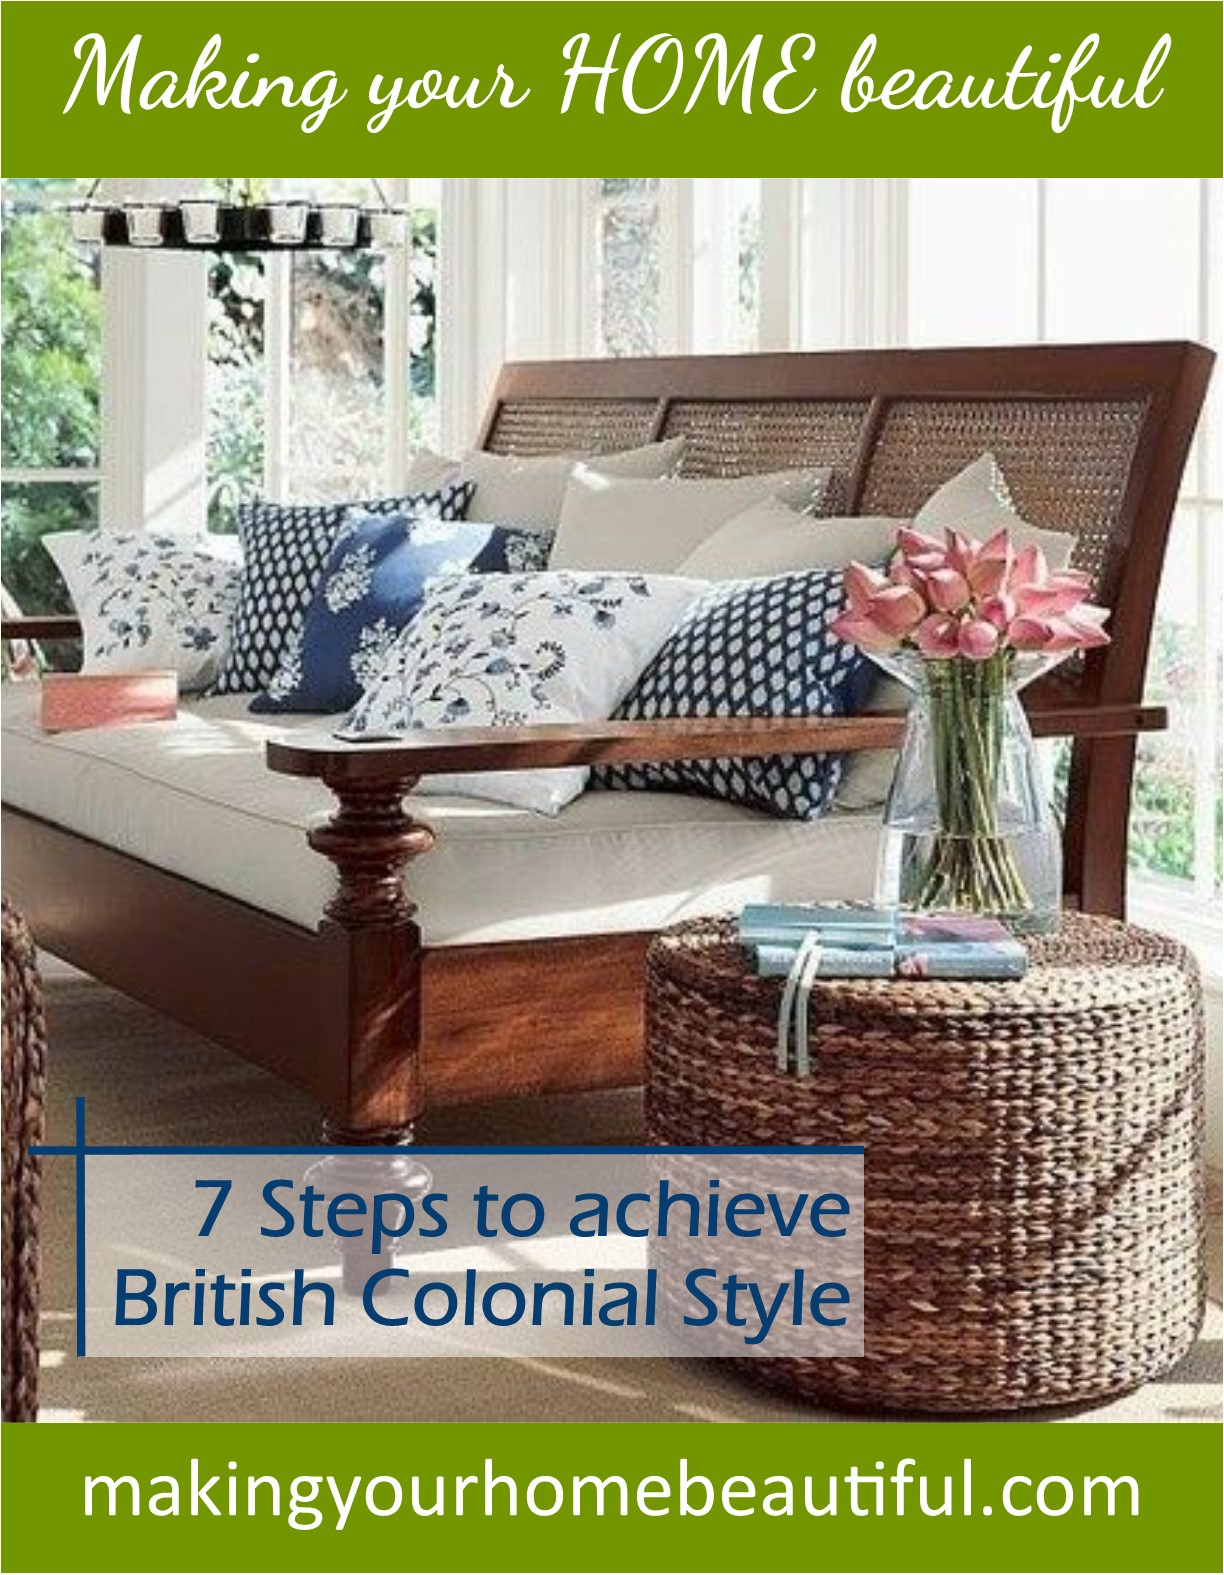 Ernest Hemingway Decorating Style British Colonial Style 7 Steps To Achieve This Look Making